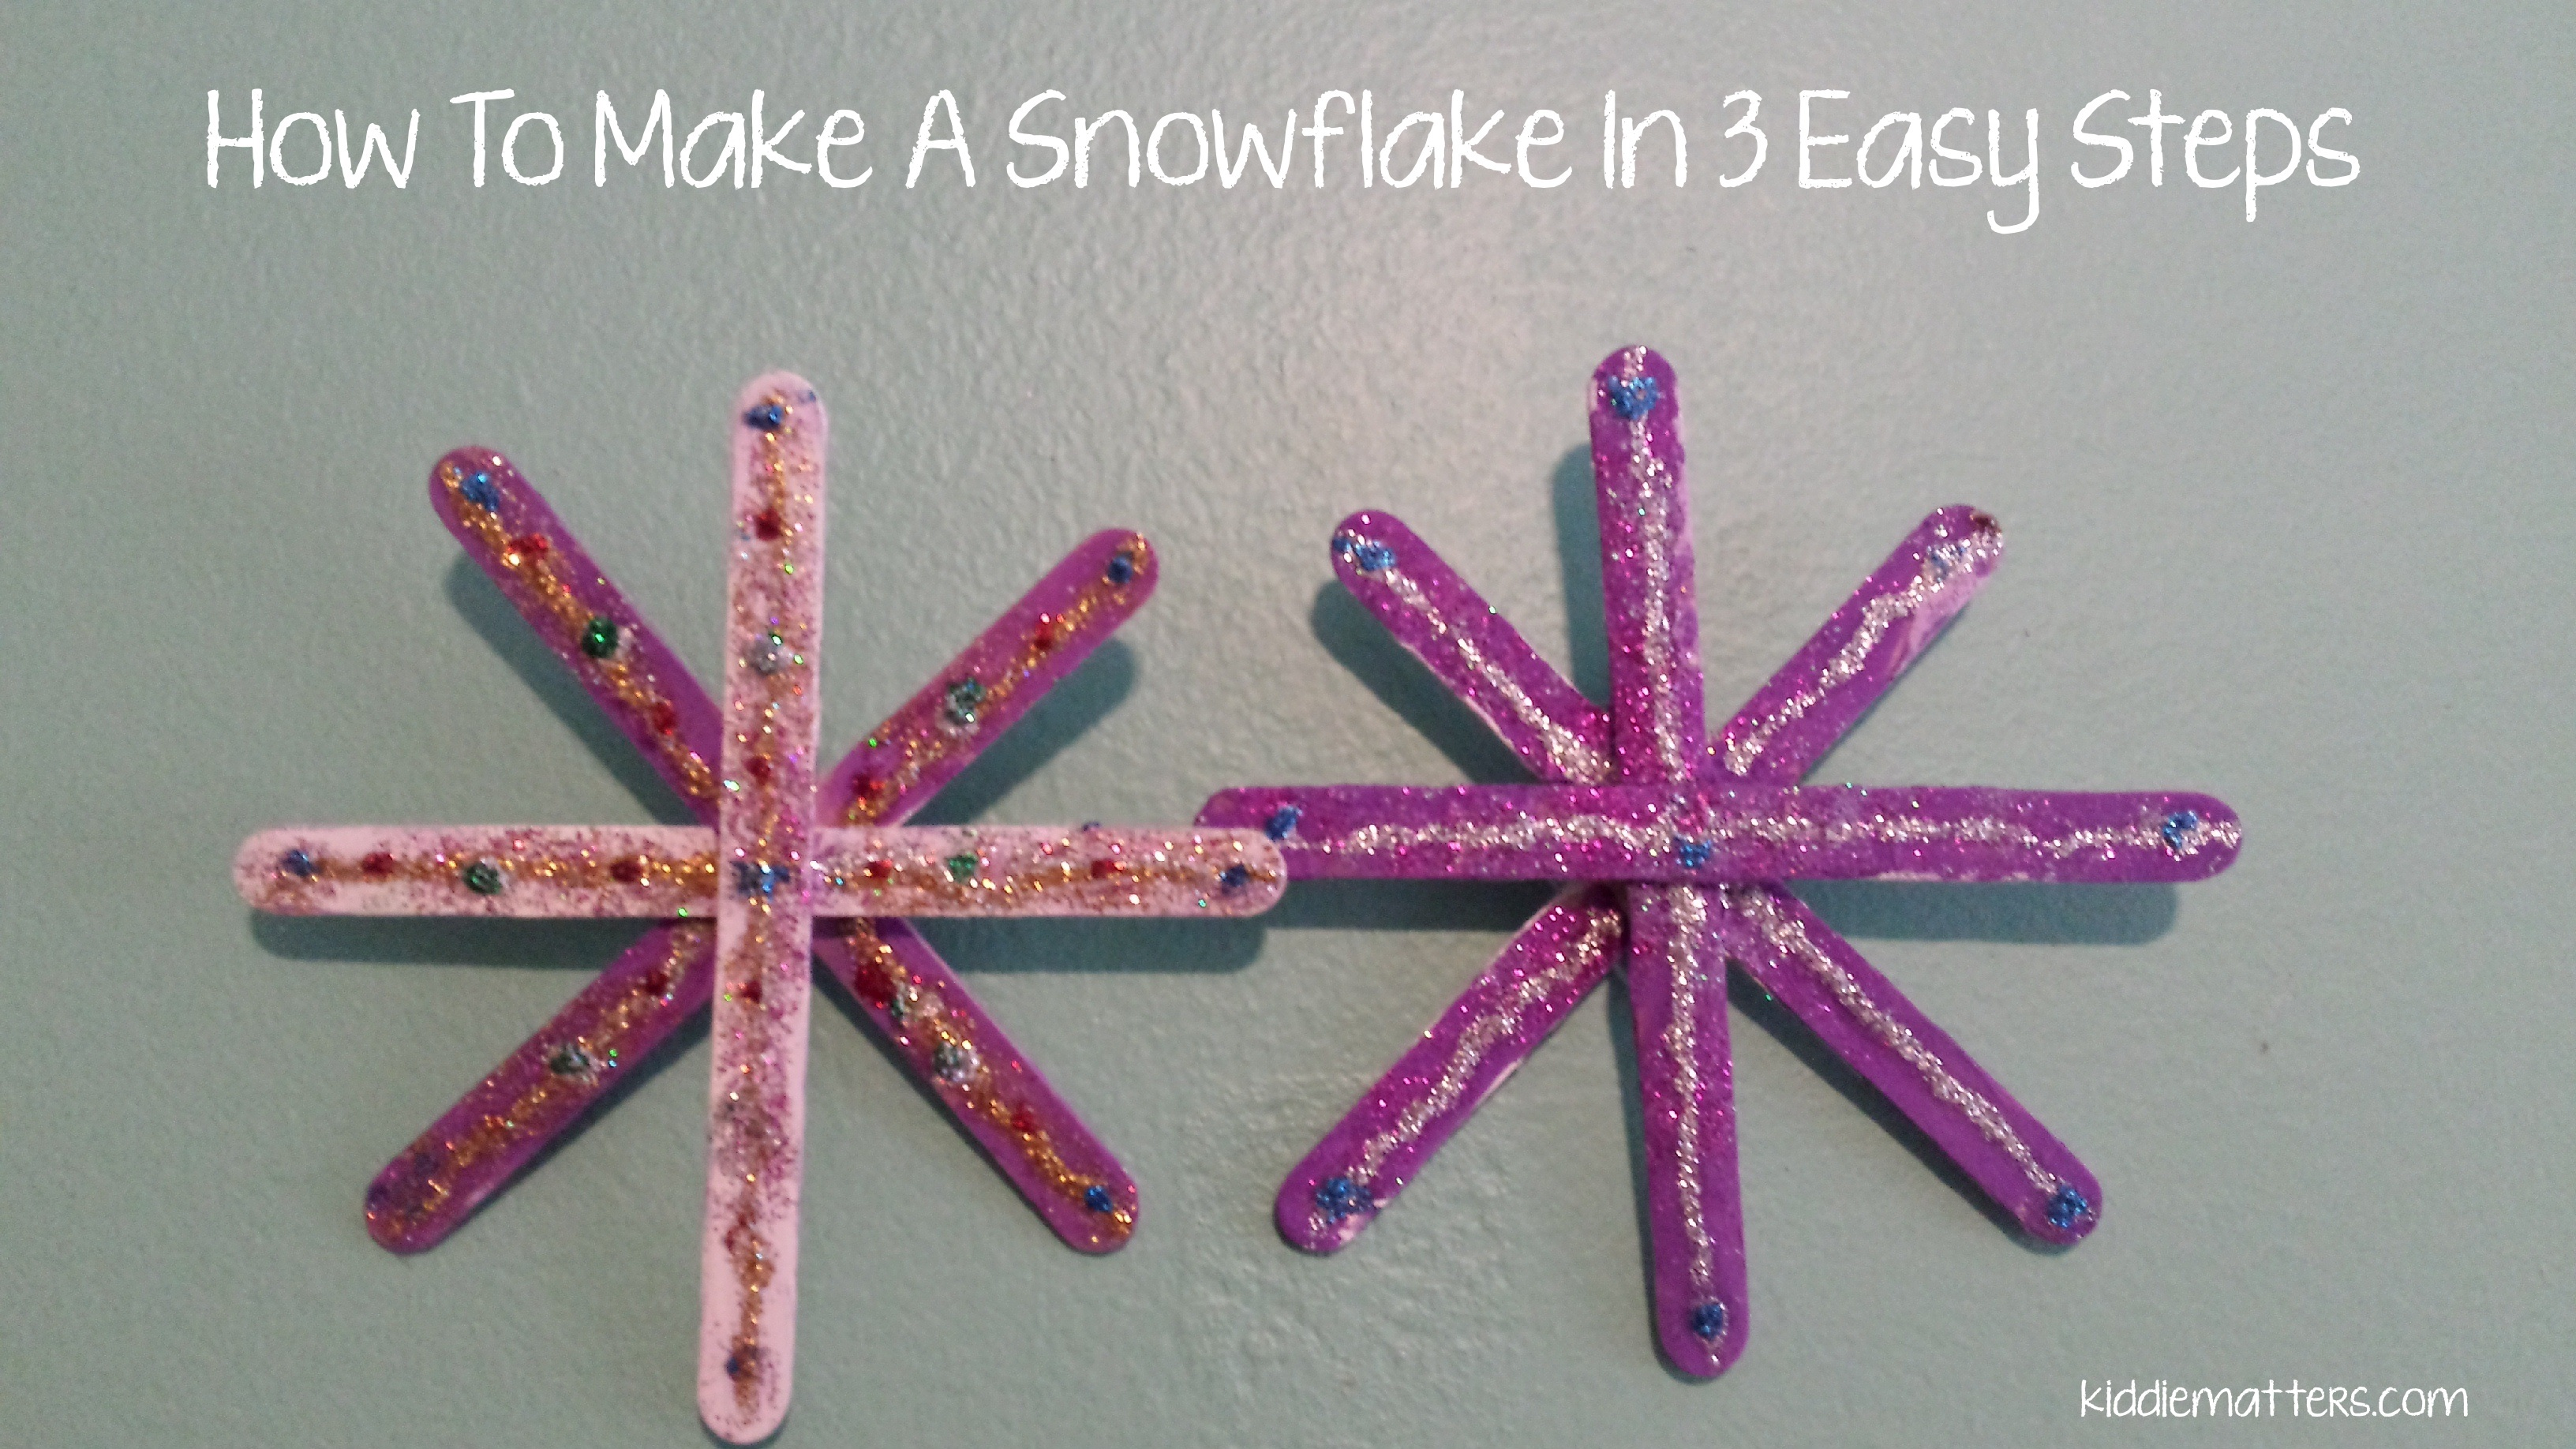 How To Make A Snowflake In 3 Easy Steps